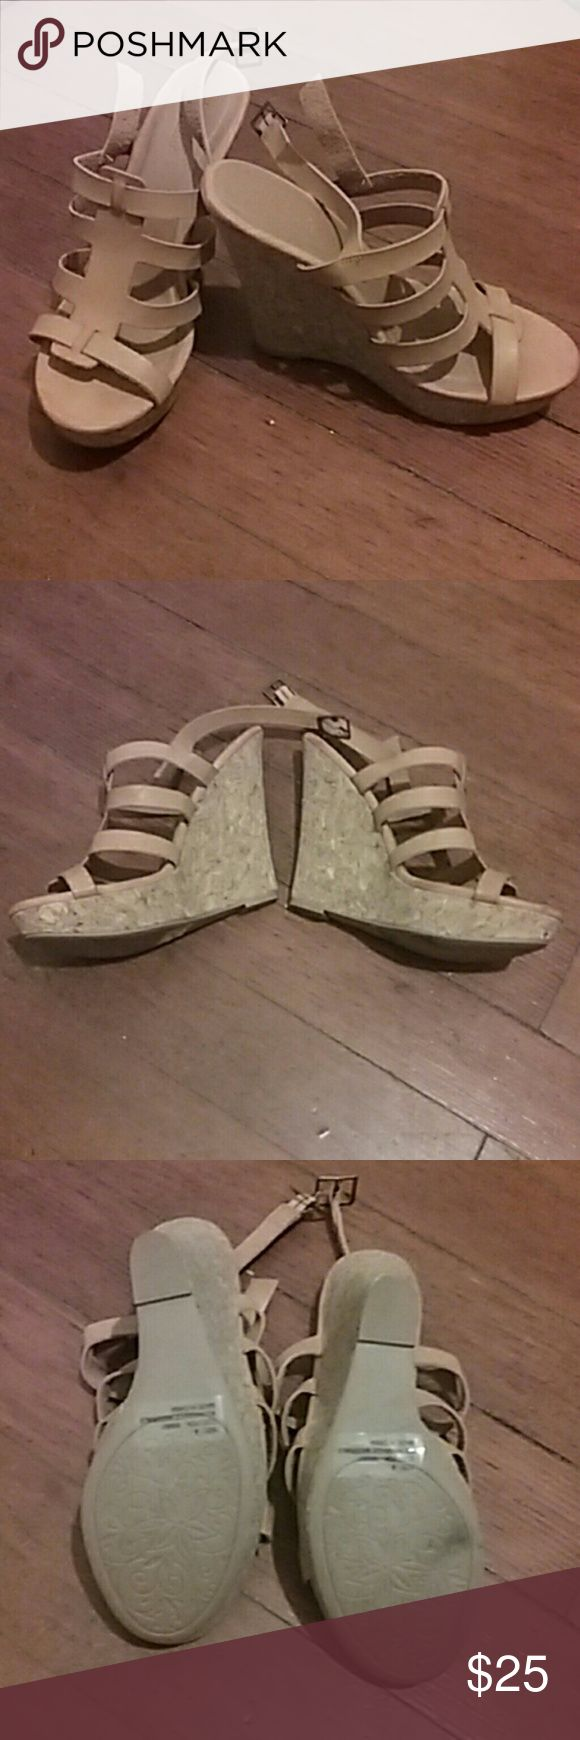 5.5in wedges Charlotte Russe Size 9 tan  strappy wedges from Charlotte Russe. Only wore for about an hour. Charlotte Russe Shoes Wedges